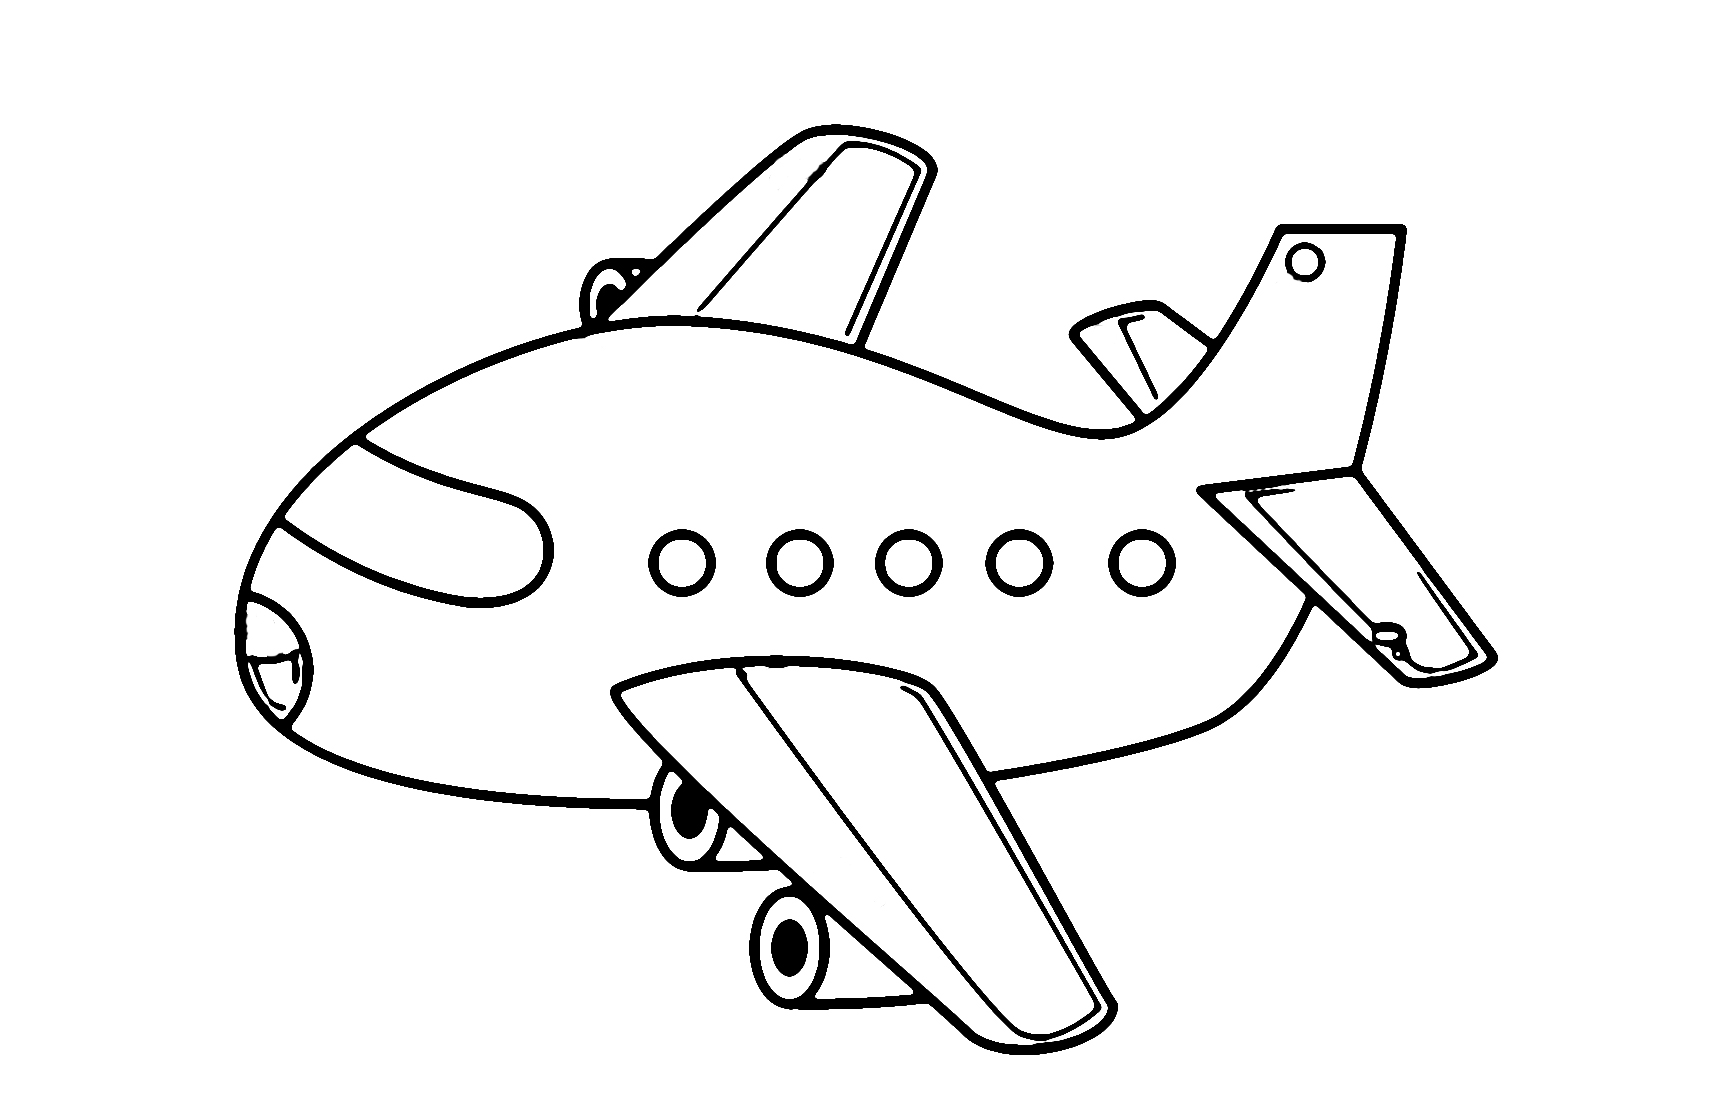 jet coloring images airplane coloring pages jet coloring images